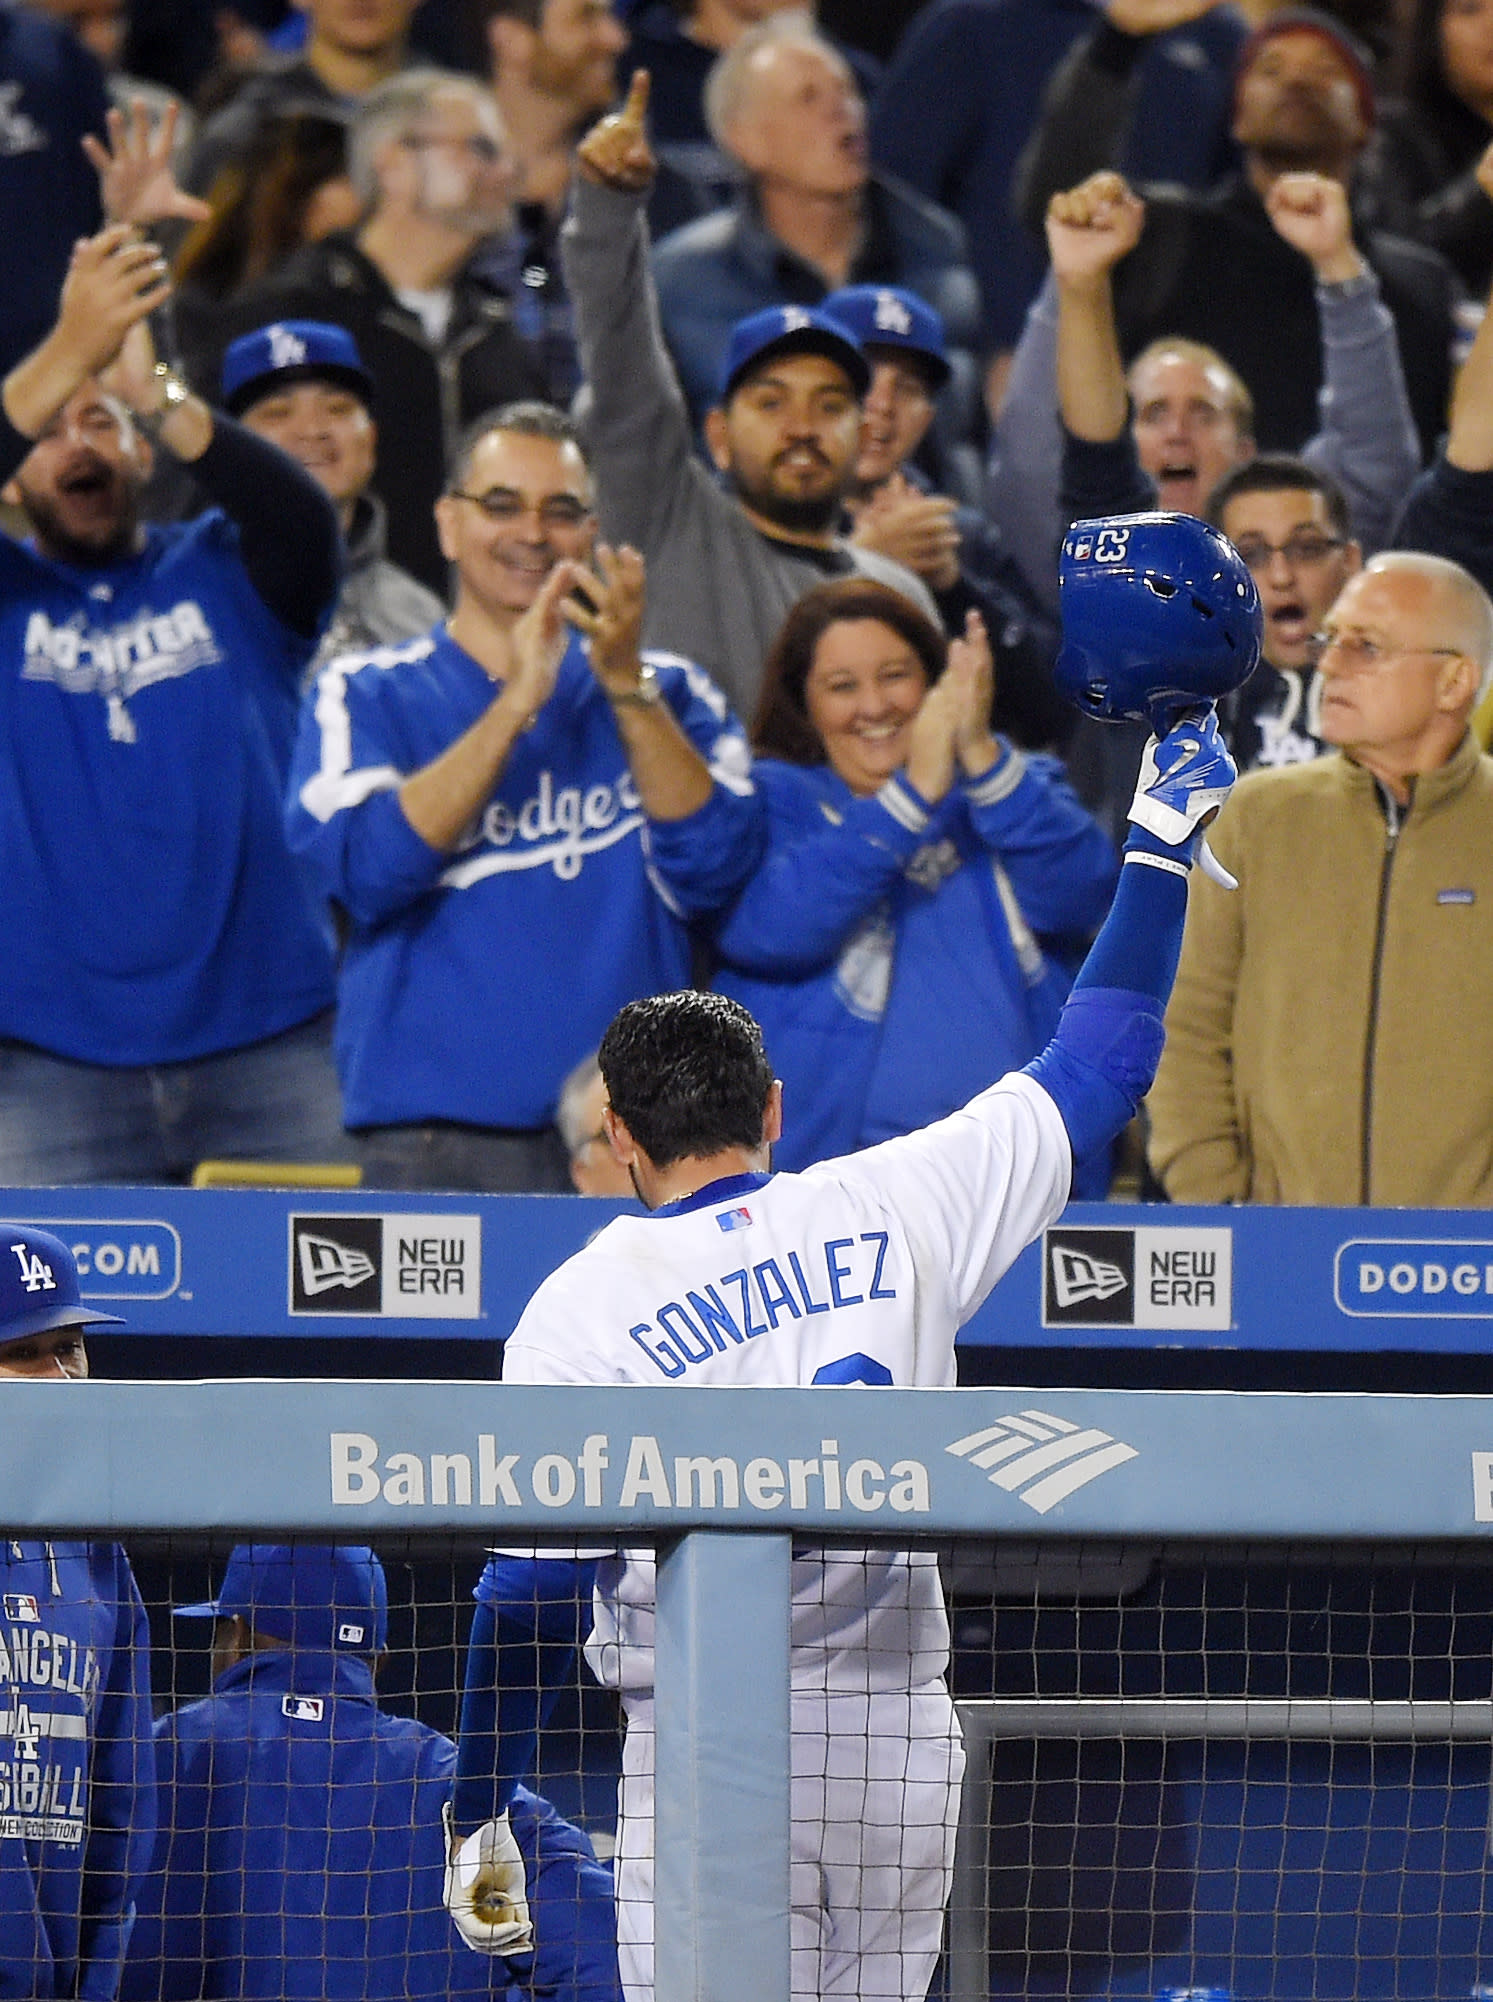 Kershaw, Dodgers breeze to 8-0 win over Braves